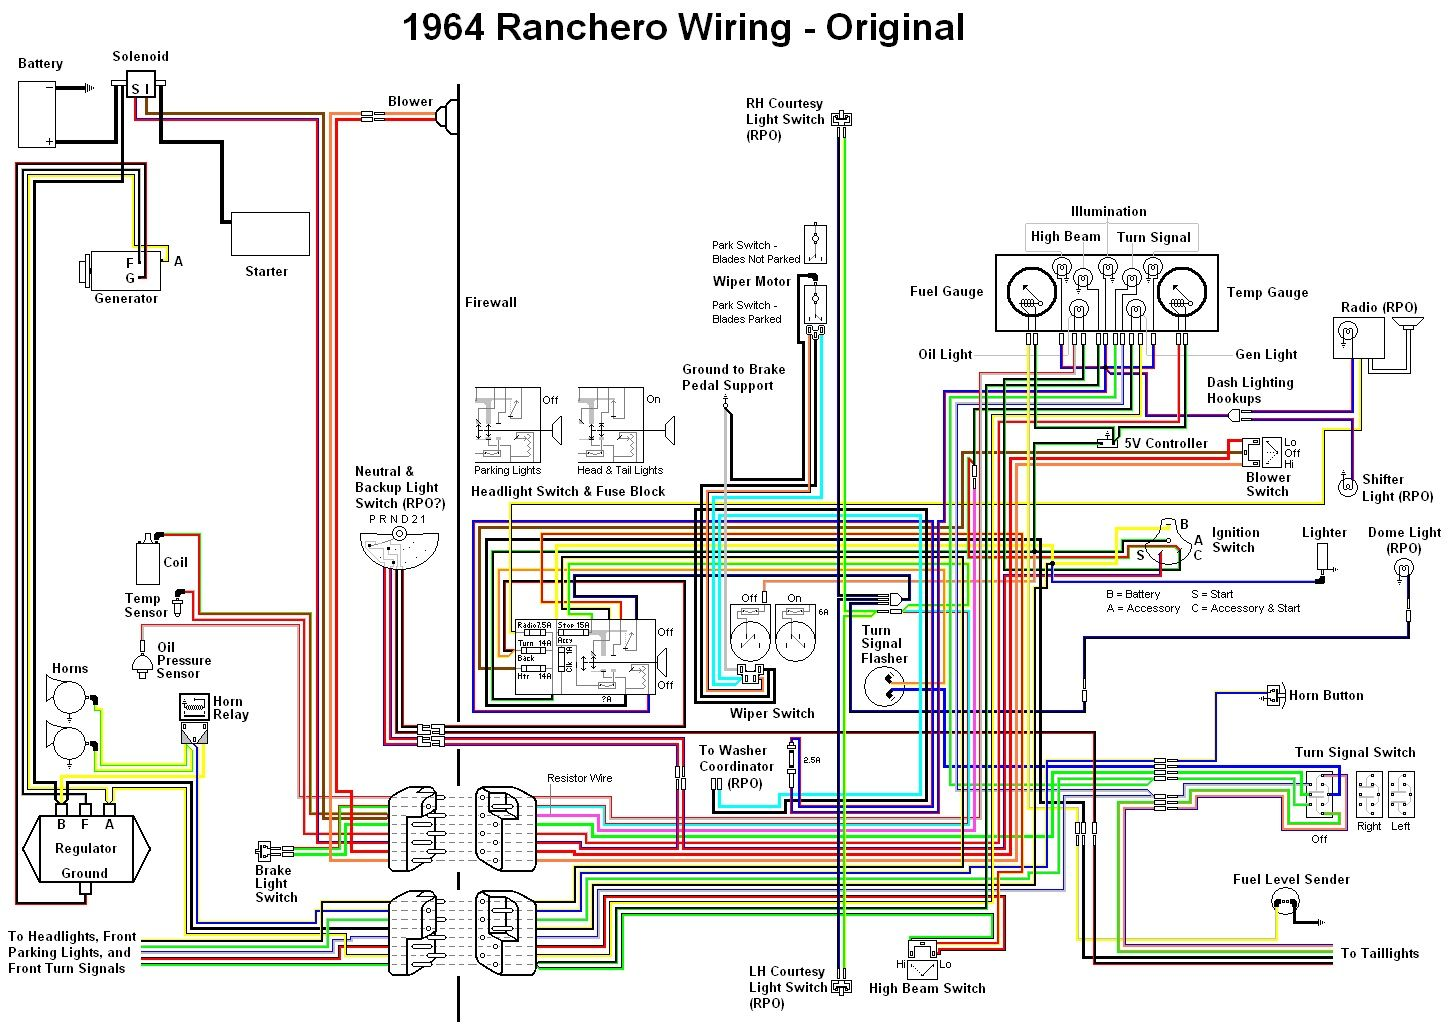 1964 Ford Falcon Ranchero Wiring Diagram About 7 Pin By Joe Reitz On Pinterest And Rusty Oregon